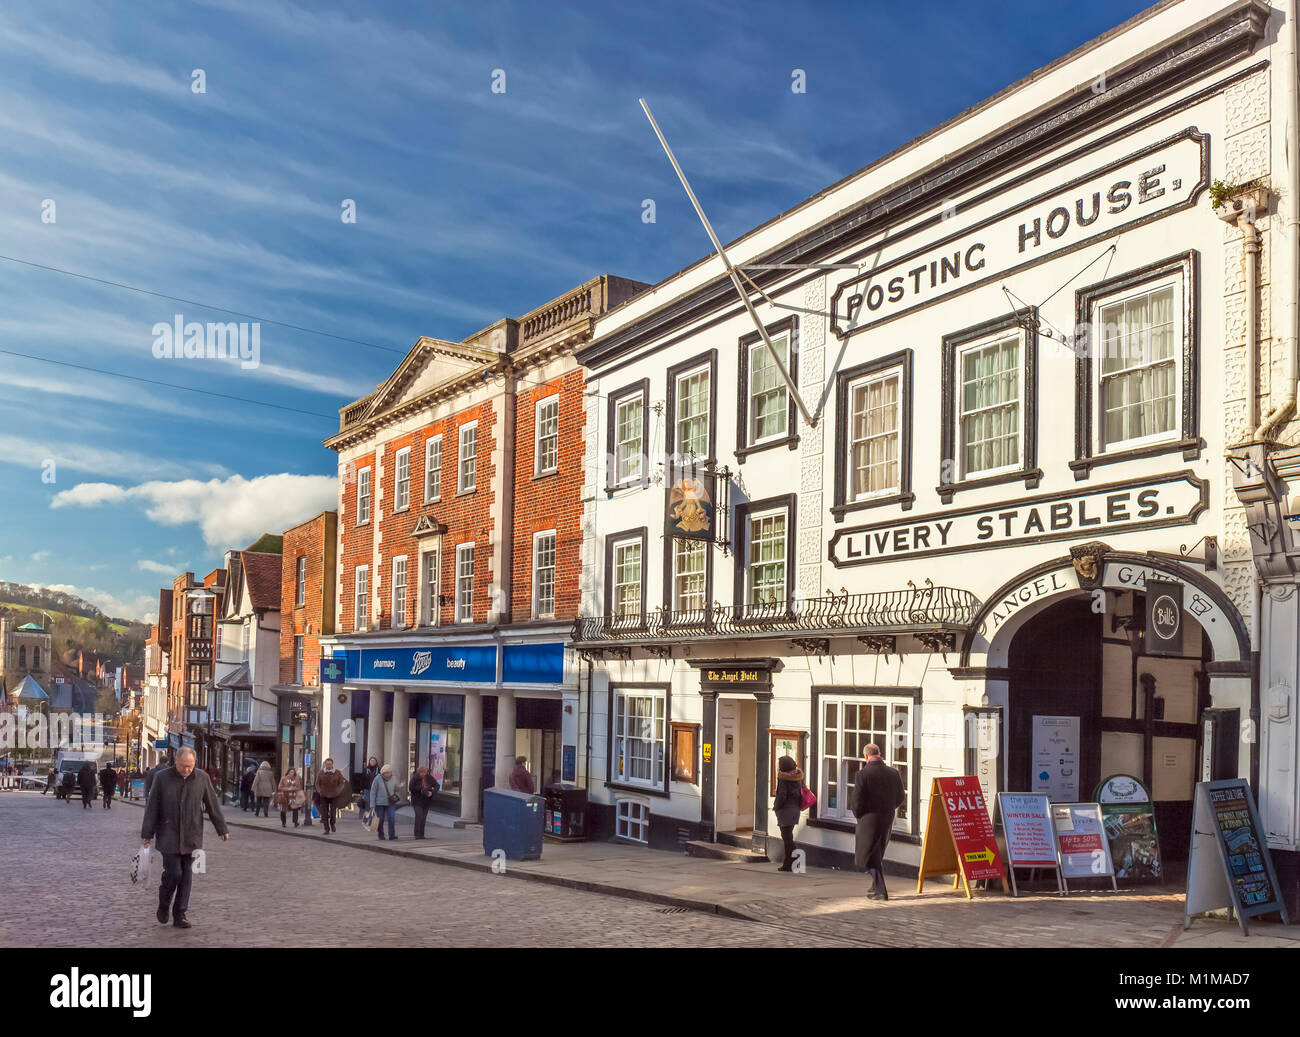 The Angel Hotel Posting House, Guildford High Street. Stock Photo